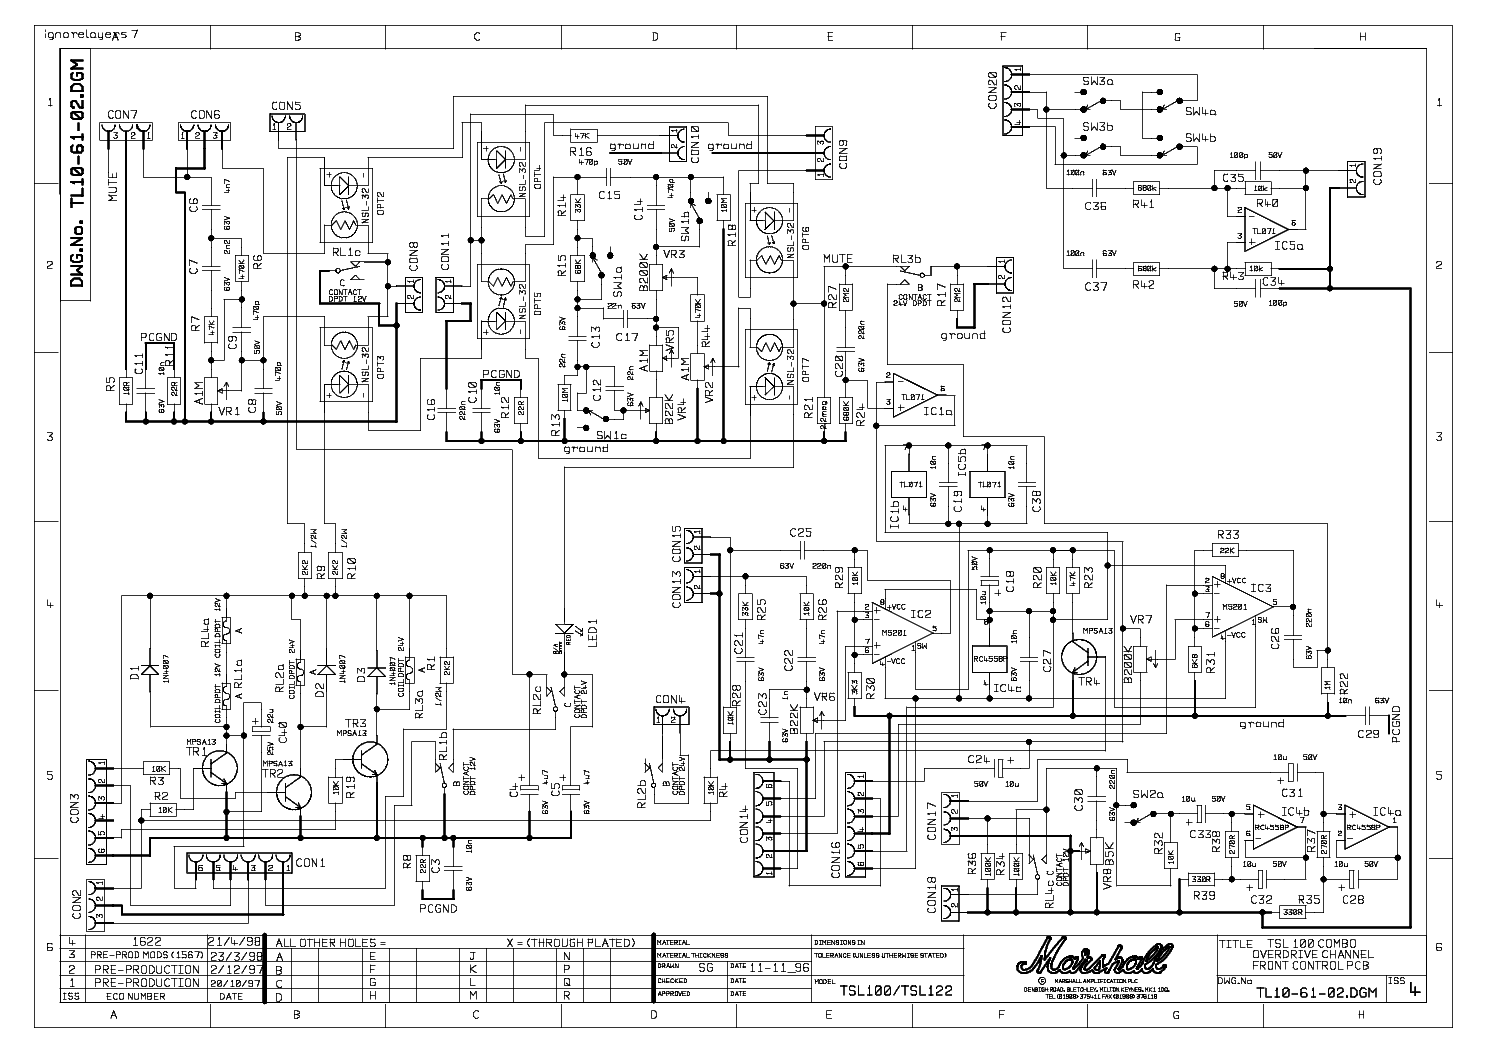 dsl circuit diagram with Marshall Jcm 2000 Dsl 100 Schematic on 422224 further Mag ic Key Wiring Diagram additionally Desktop Power Switch Wiring Diagram furthermore Power Box Wiring Diagram moreover Marshall Jcm 2000 Dsl 100 Schematic.